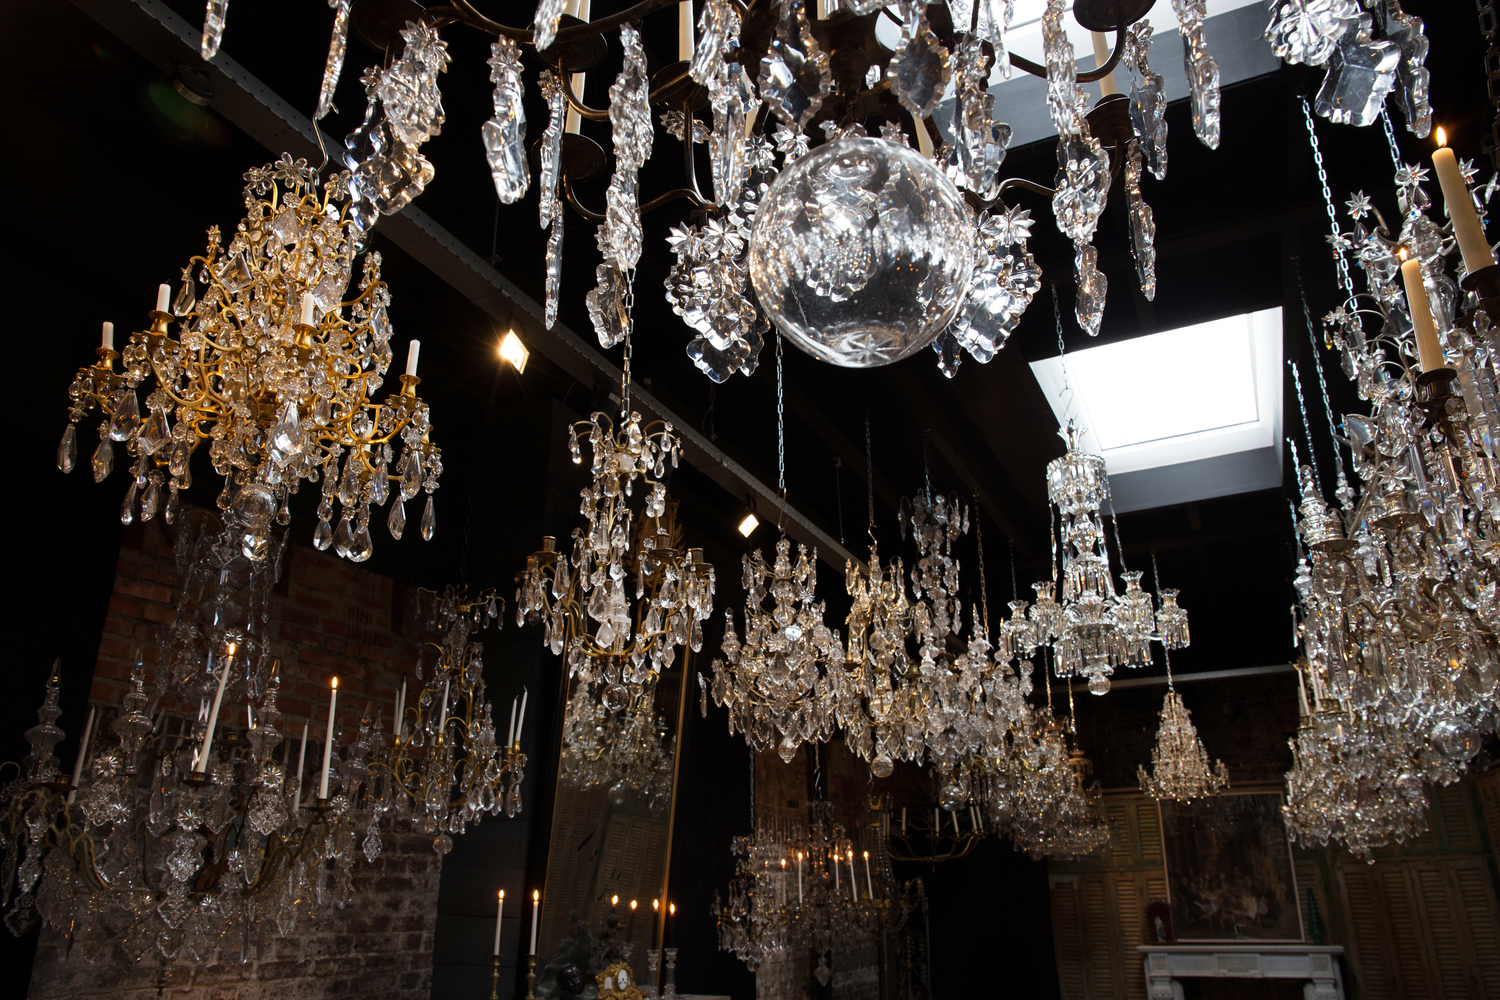 Collection Of Chandeliers Pascal Mestrom Maastricht The Netherlands Image Source Here